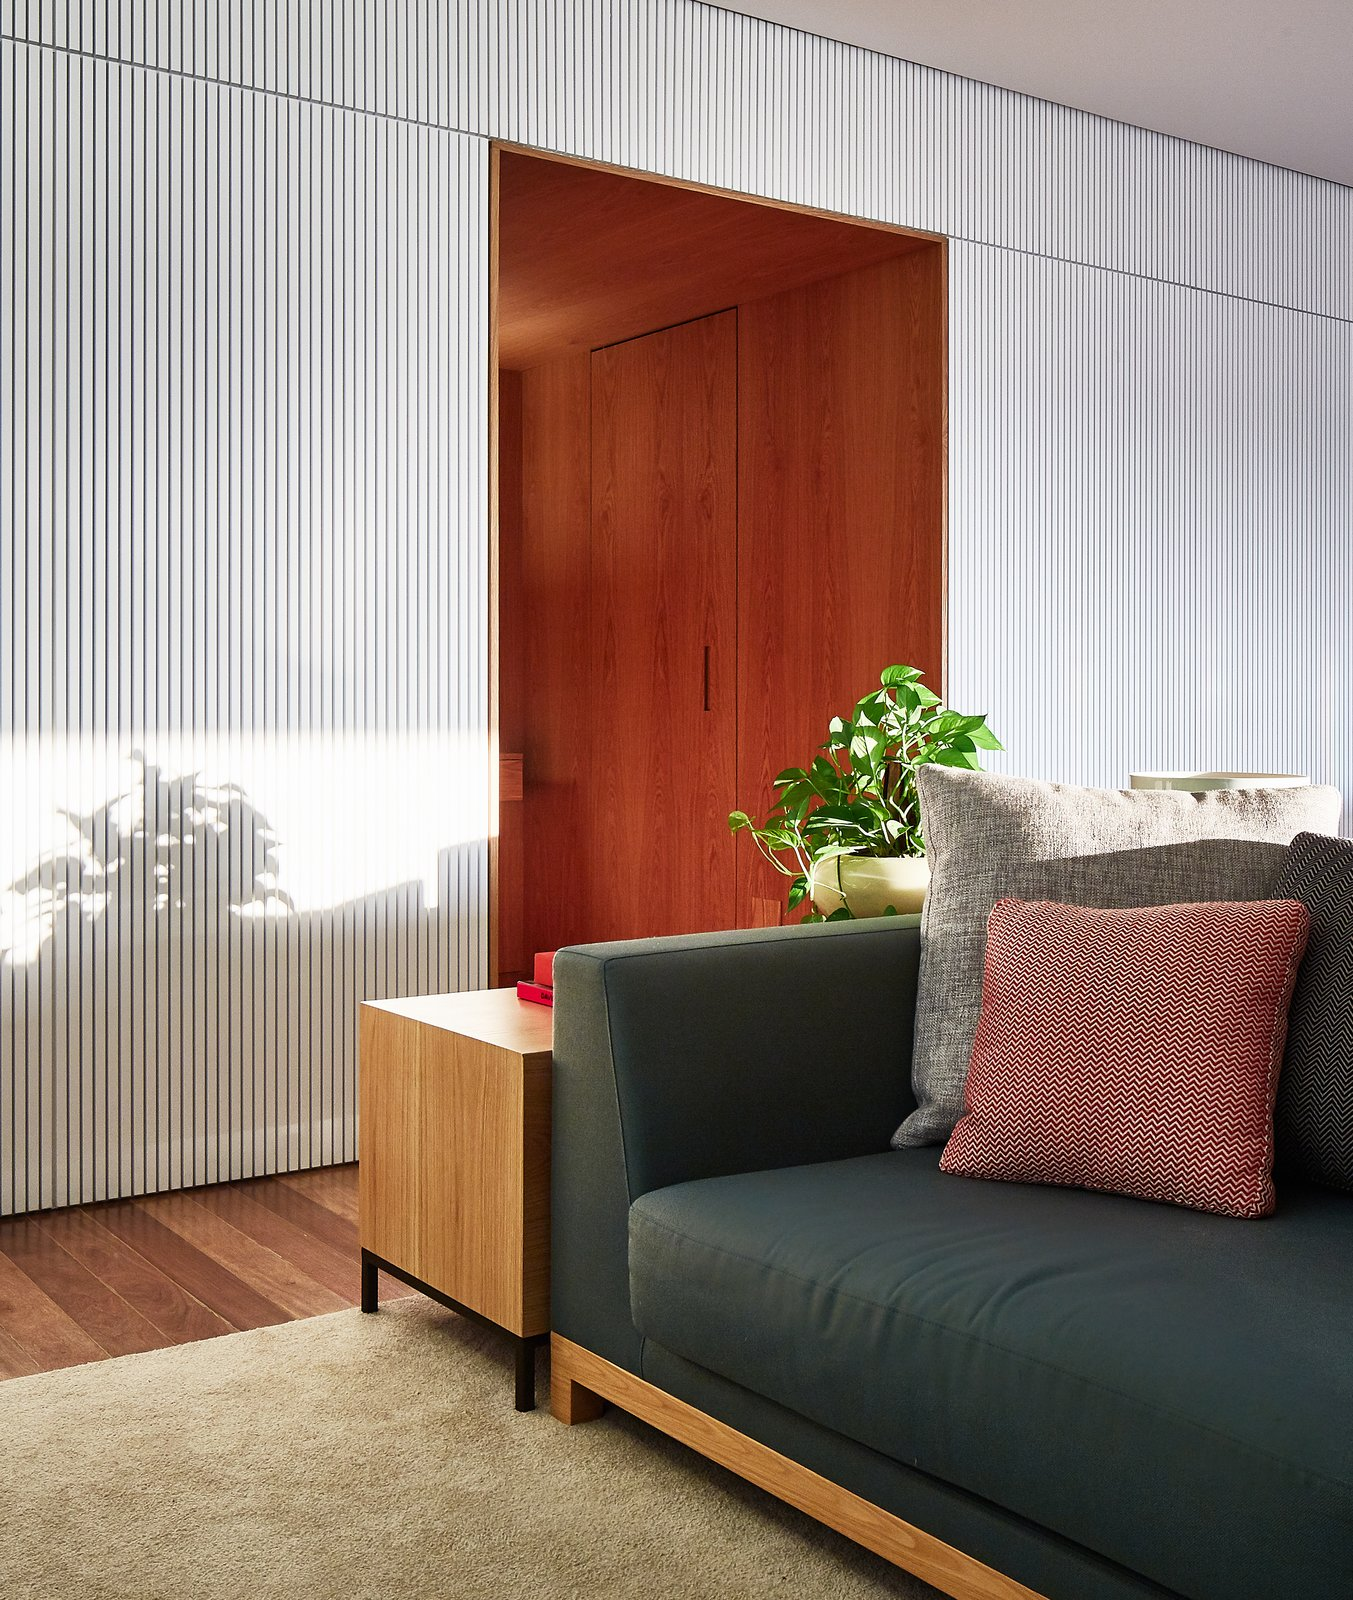 A wood-clad entrance hall leads to the bedrooms.